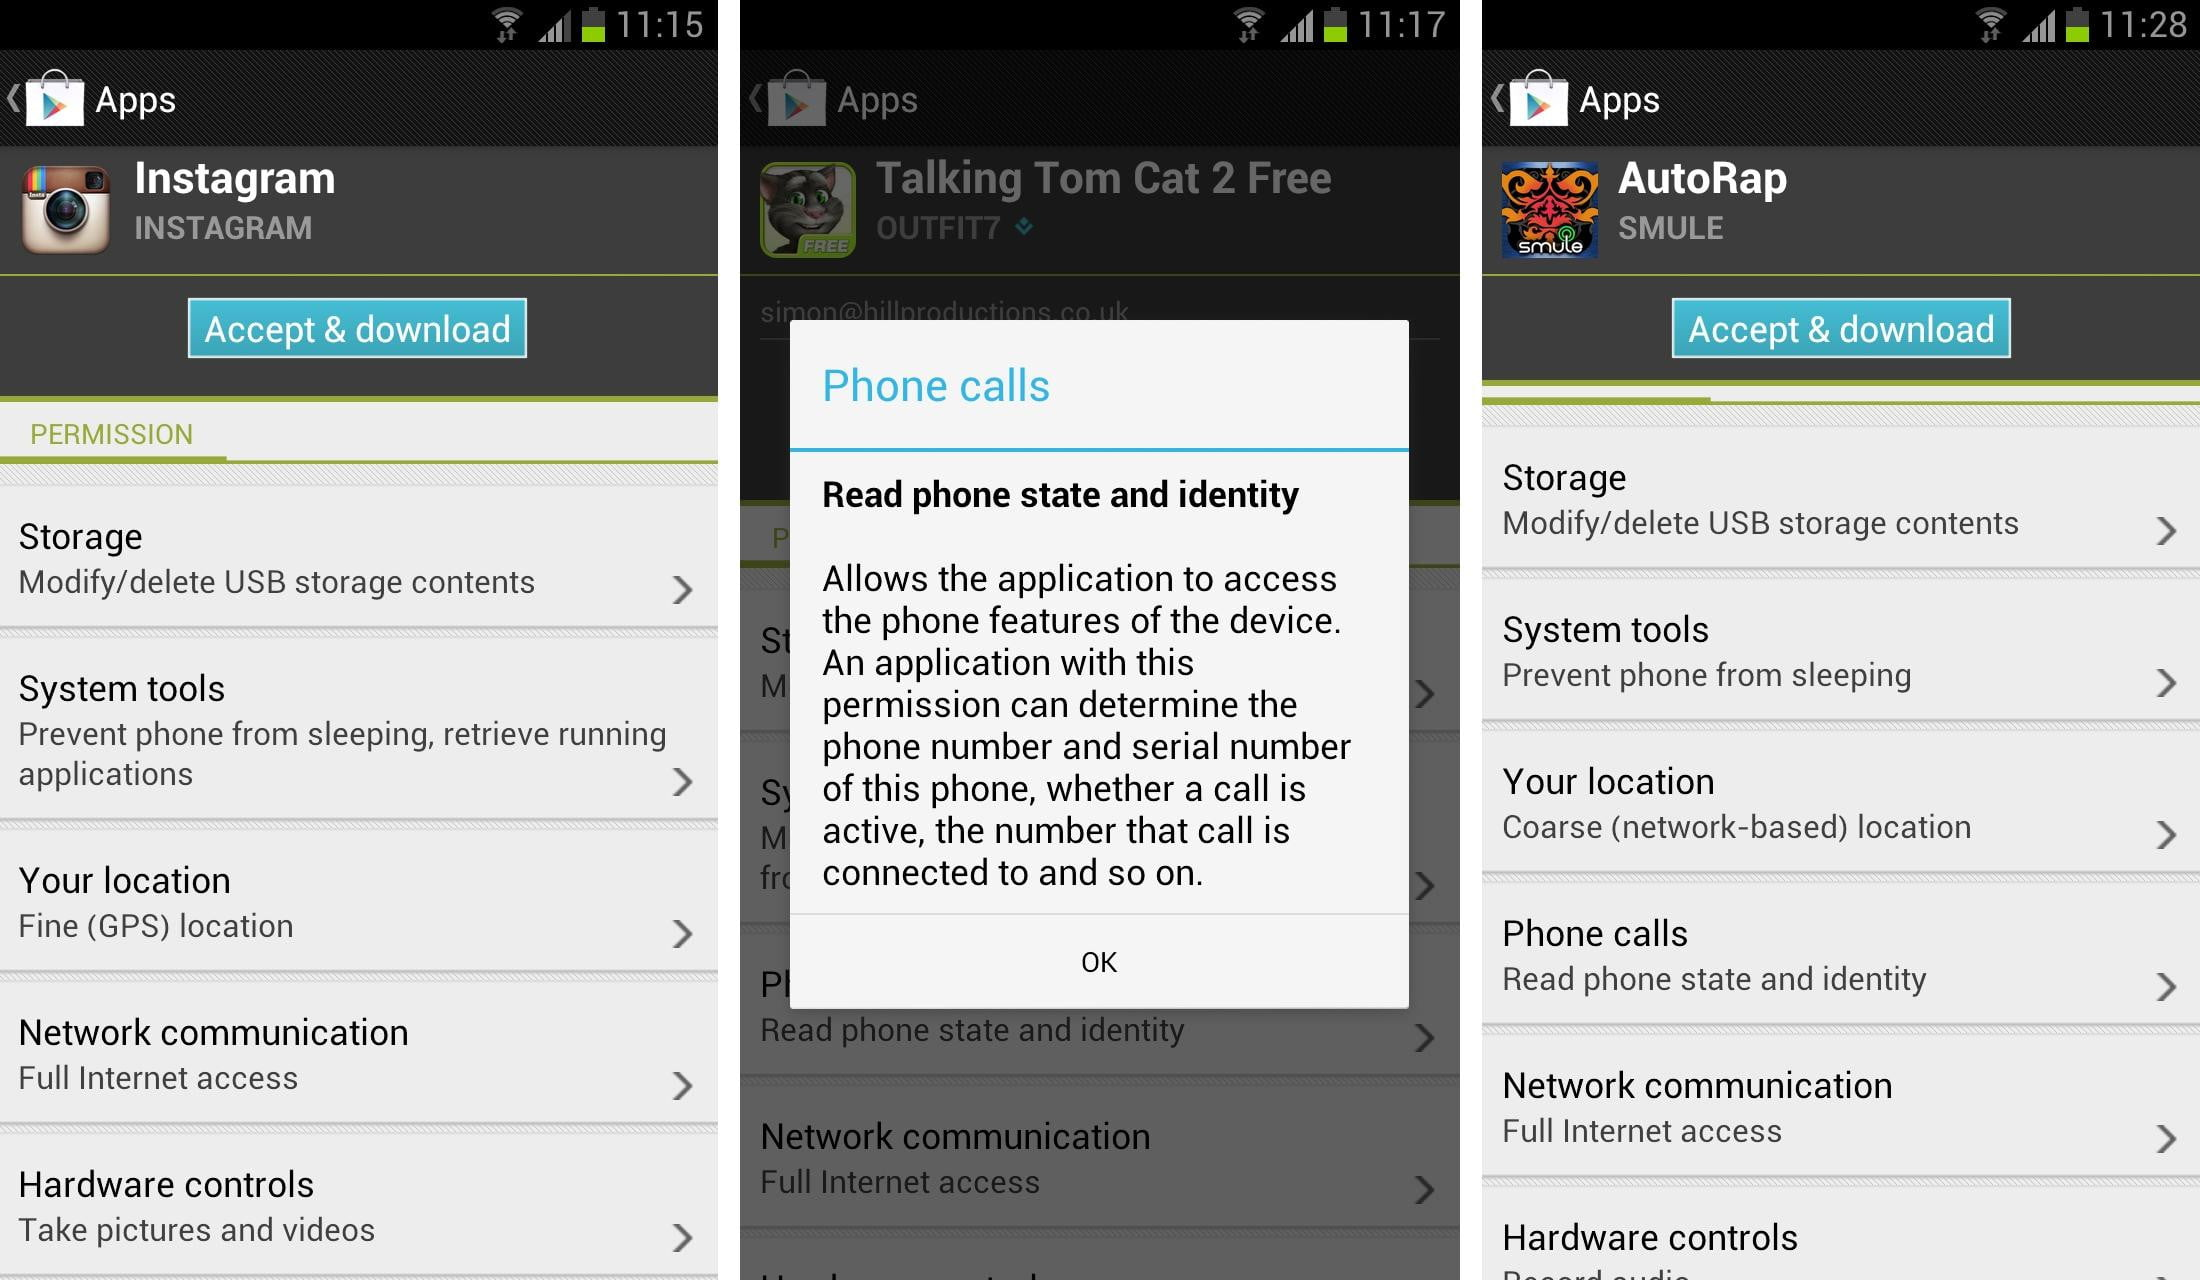 Android App Security Basics | Digital Trends